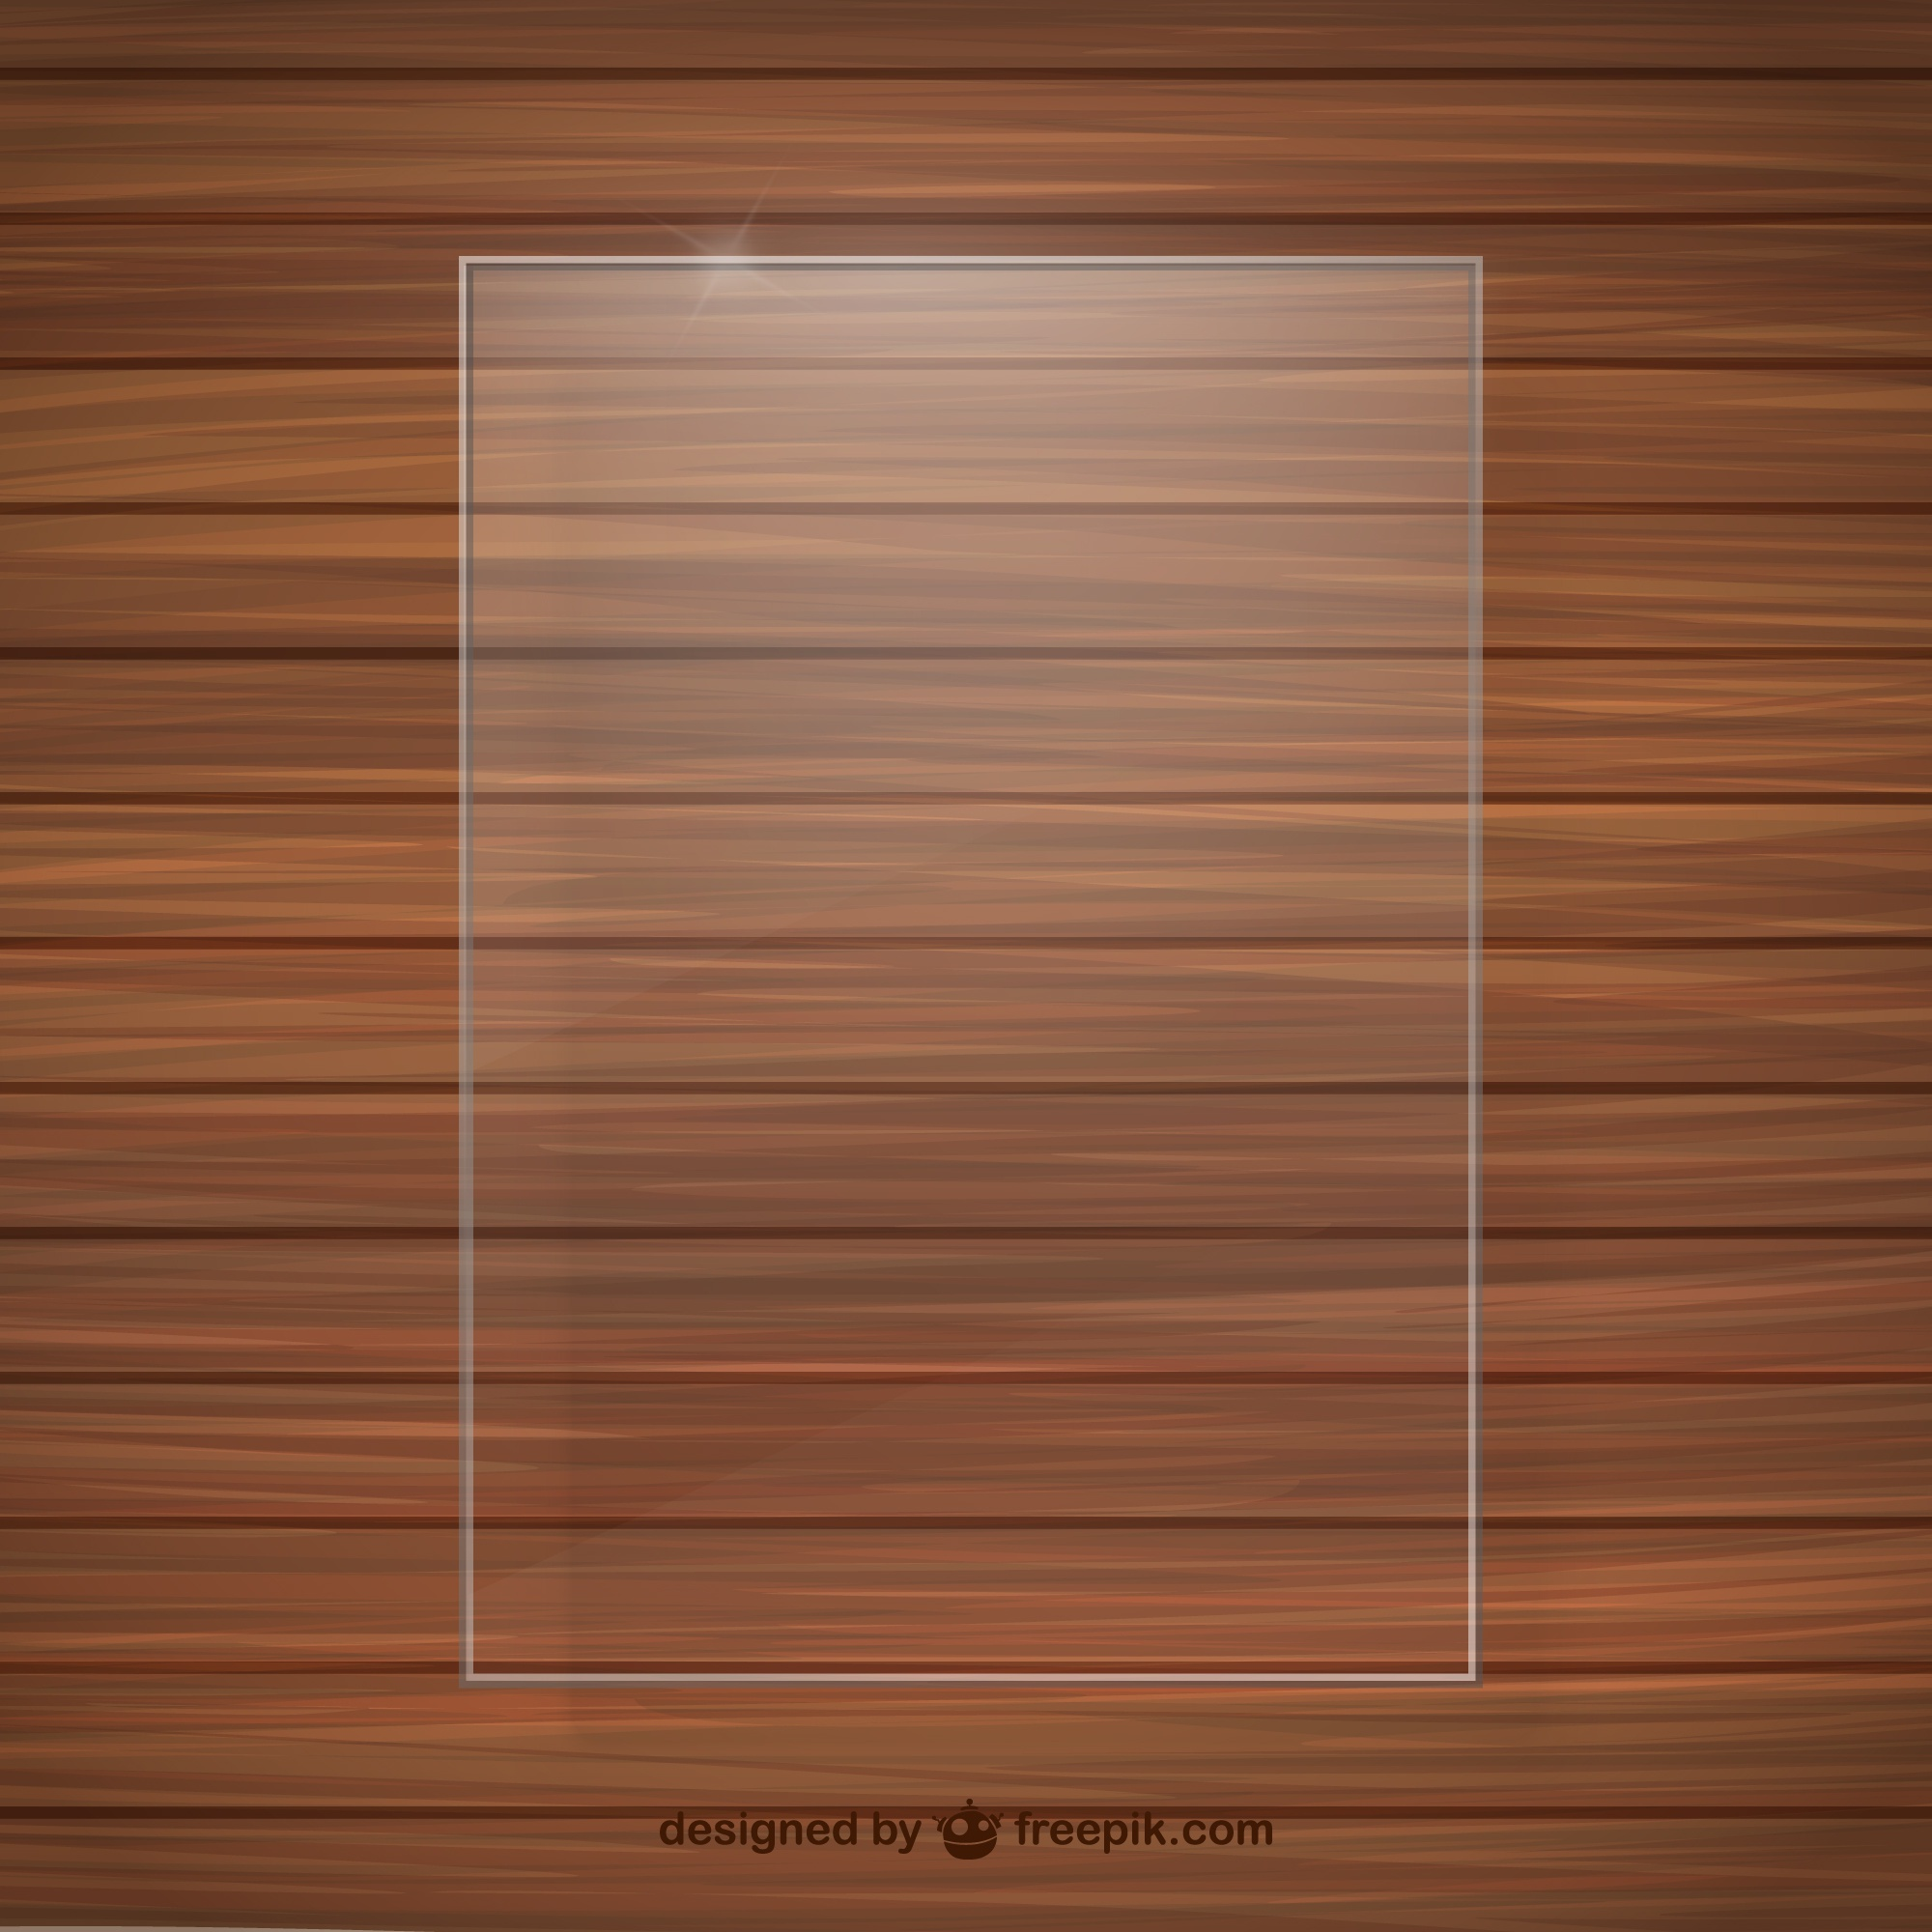 Crystal frame wood texture